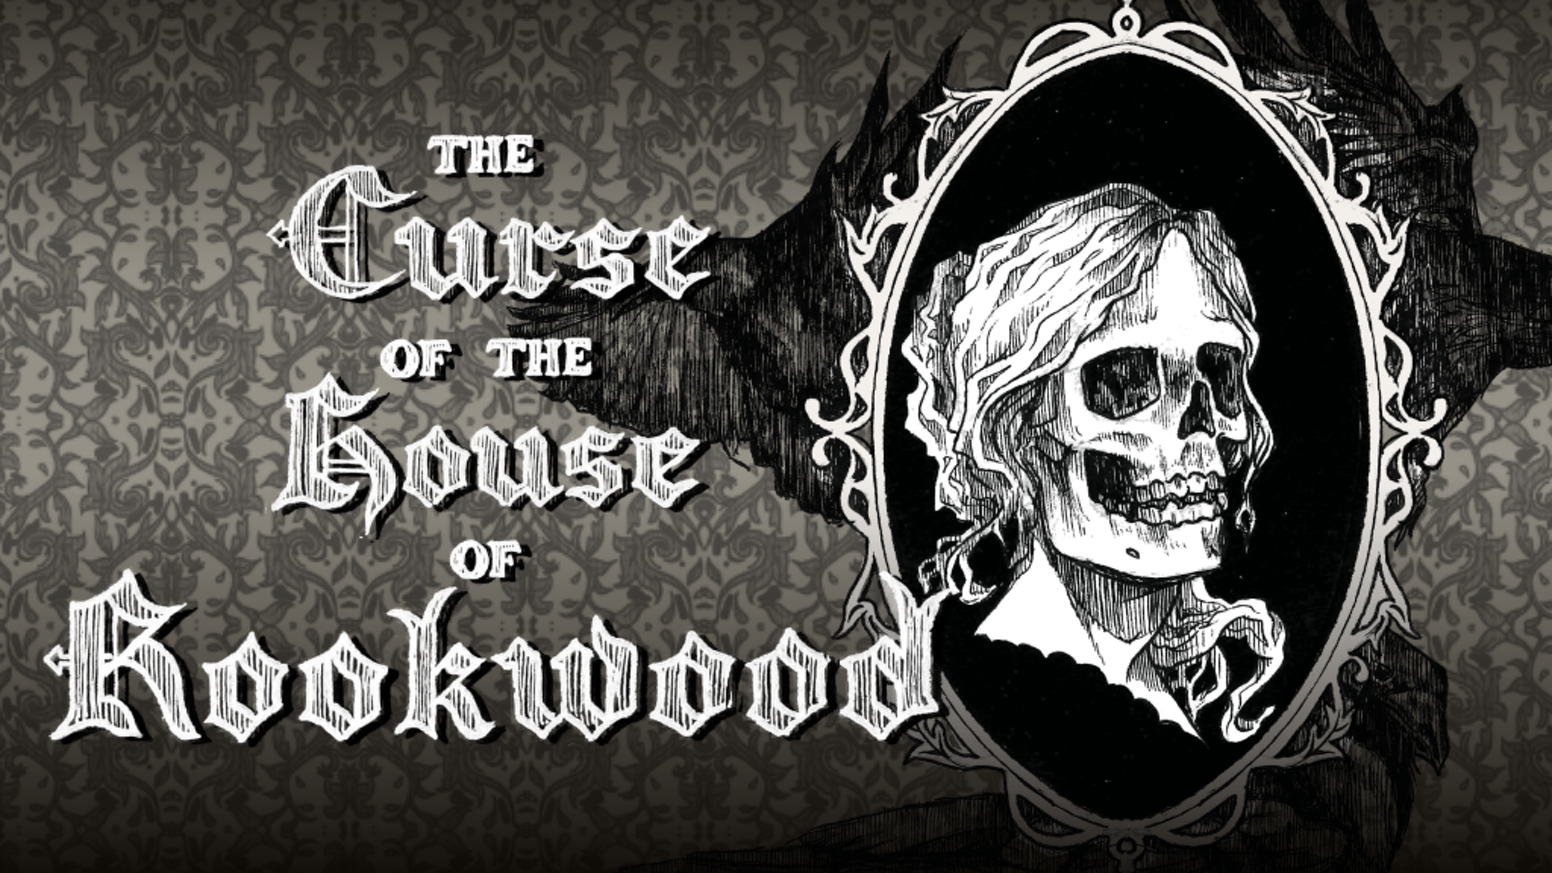 A tabletop RPG about a cursed family with skeletons in their closets and dark magic in their veins.